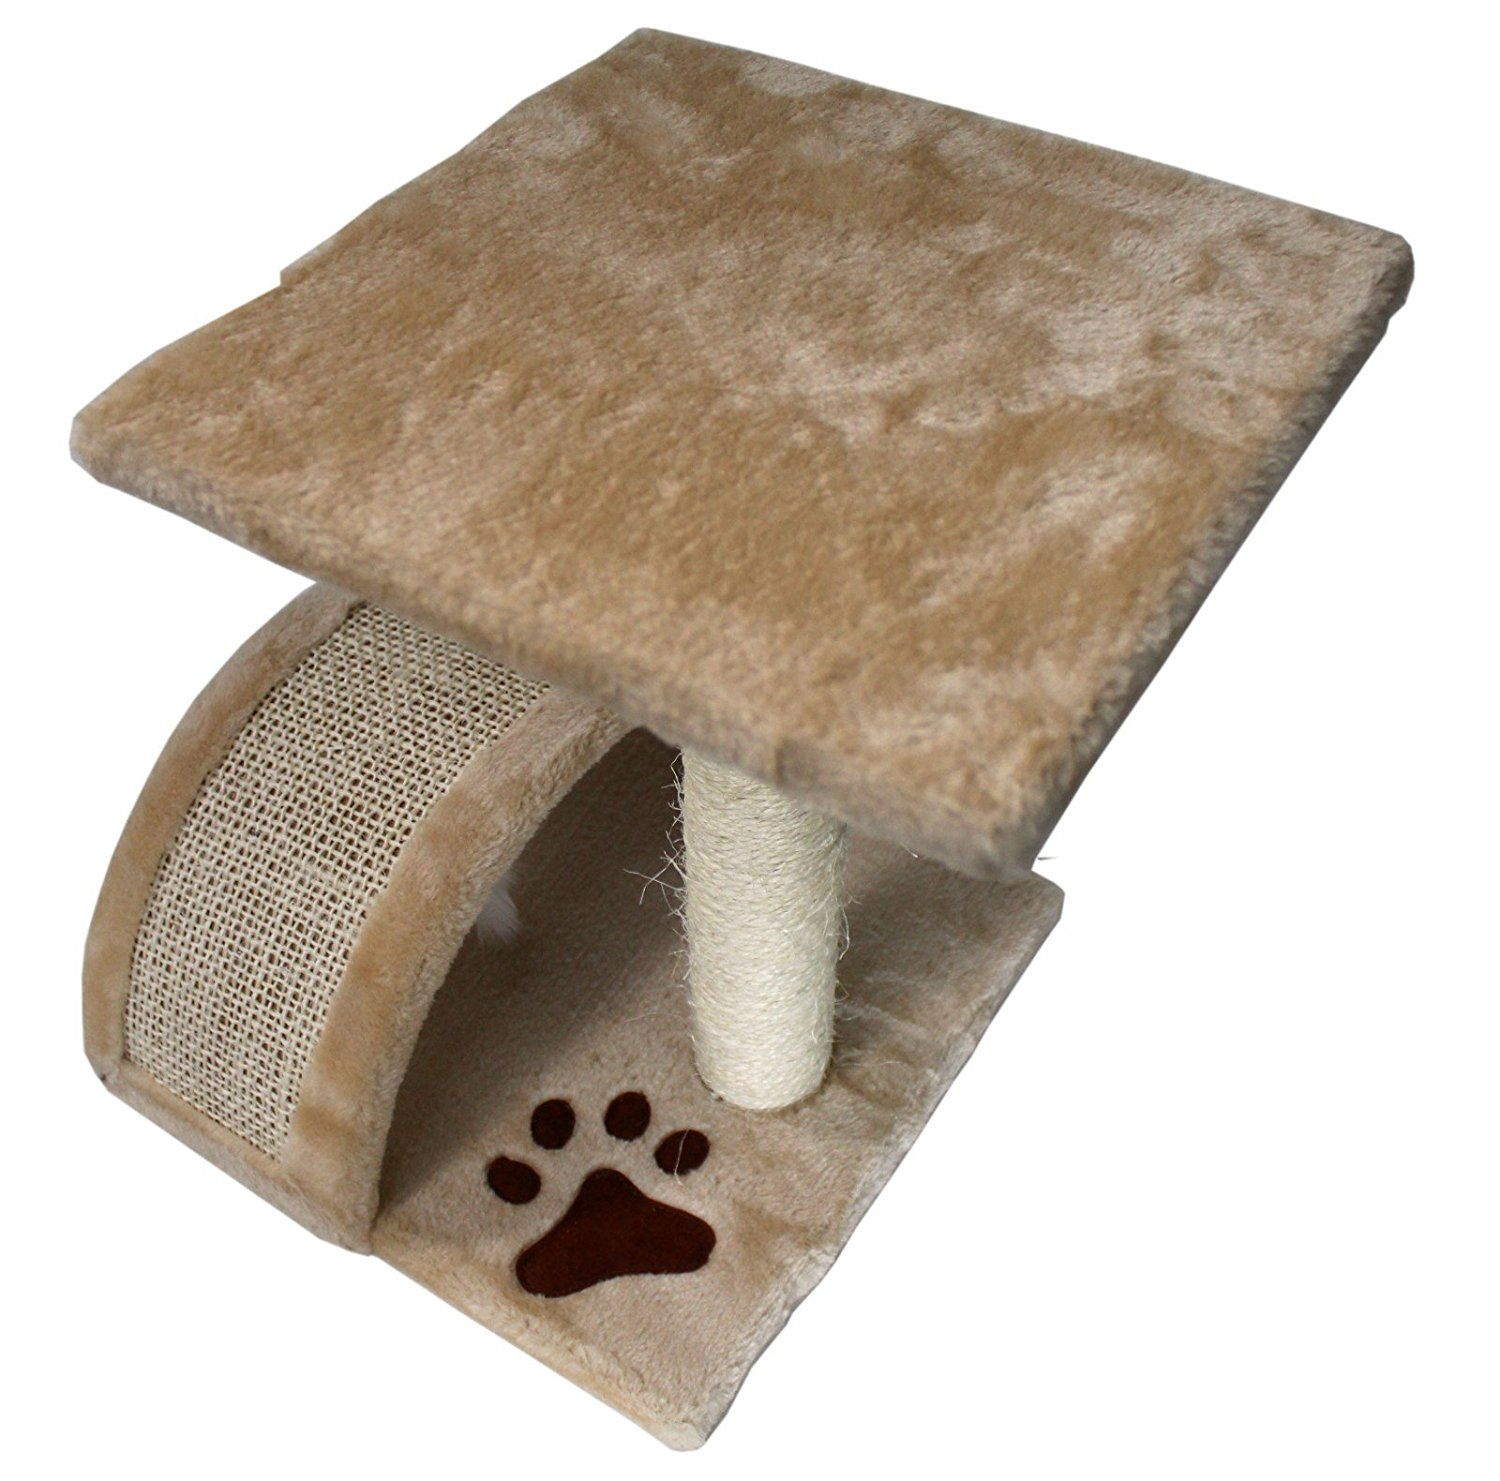 15 Small Cat Tree Sisal Scratching Post Furniture Playhouse Pet Bed Kitten Toy Cat Tower Condo For Kittens Beige From Fl Small Cat Tree Kitten Toys Cat Tree